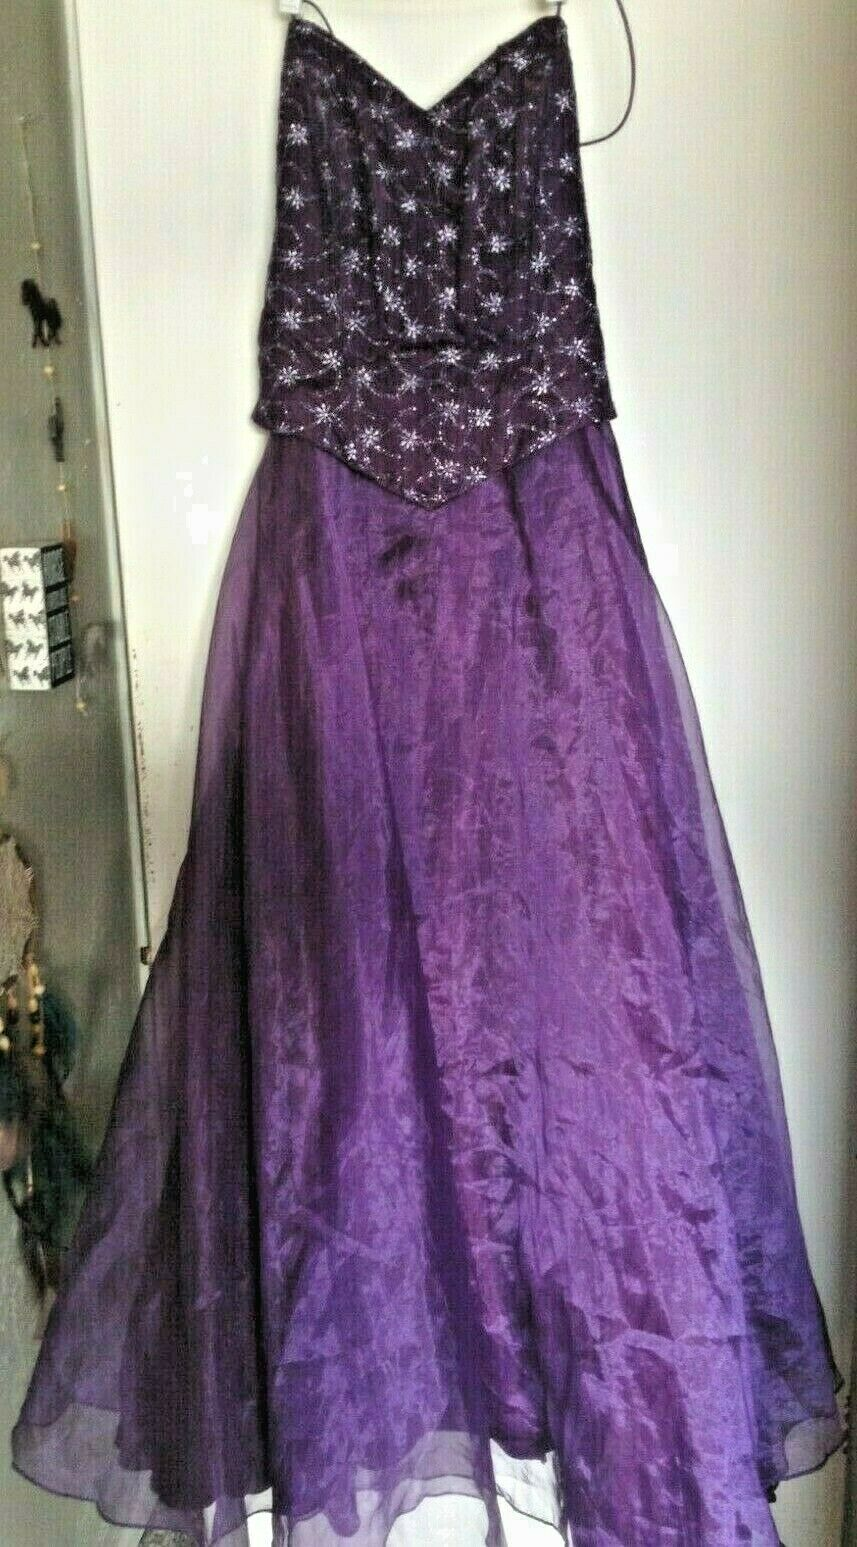 USA-Made Purple Long Prom Dress Evening Gown Shoulder-Free Lace-Up Back SZ M/L